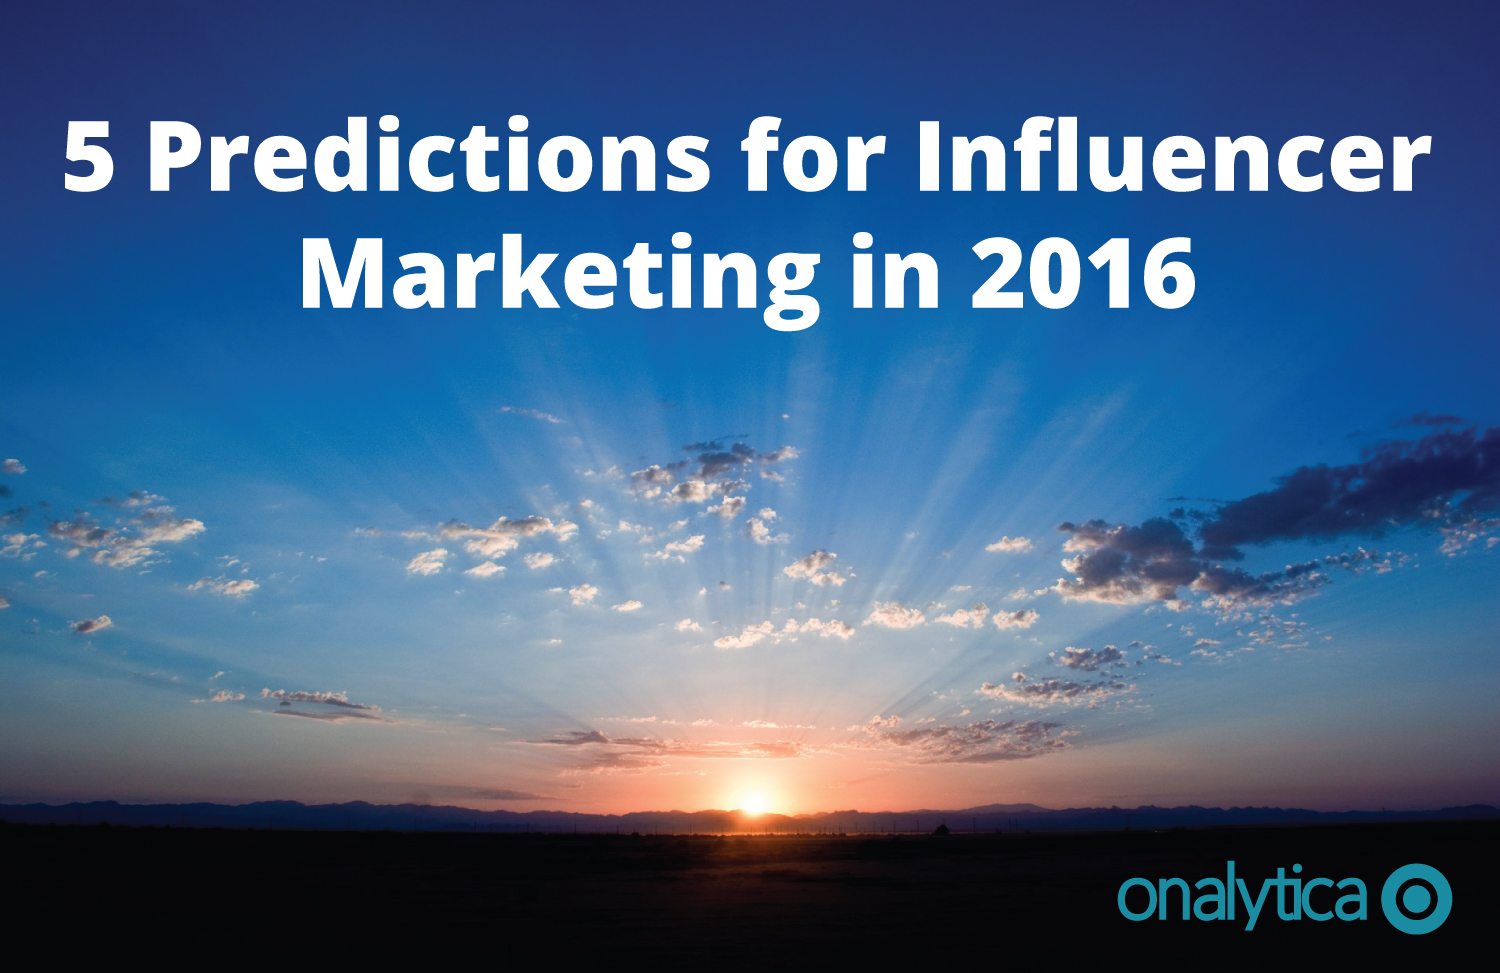 Onalytica - 5 Predictions for Influencer Marketing 2016